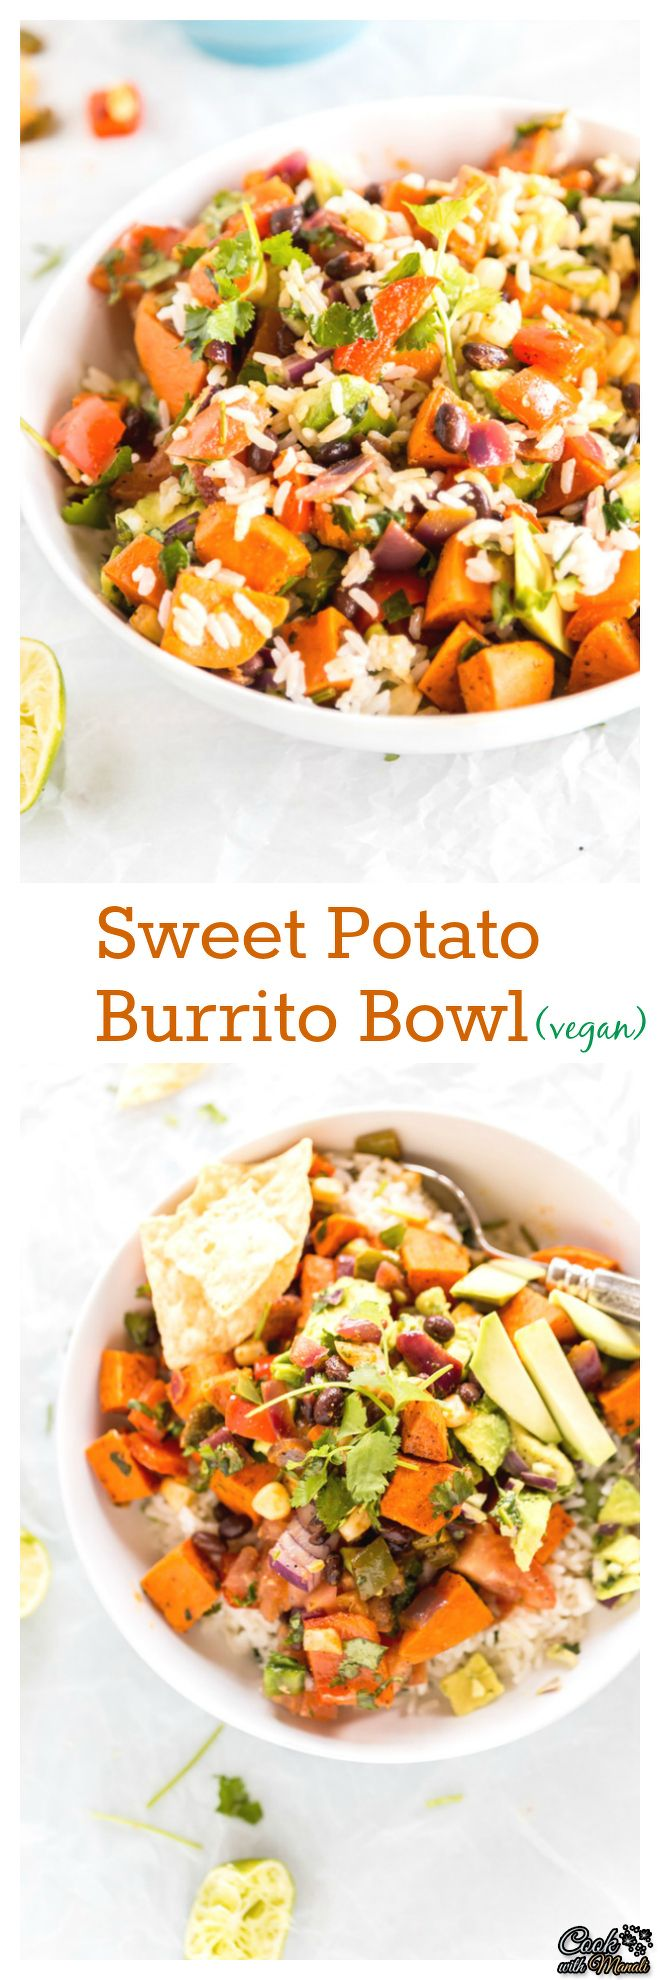 27 best images about Burritos for Zach on Pinterest | T ...